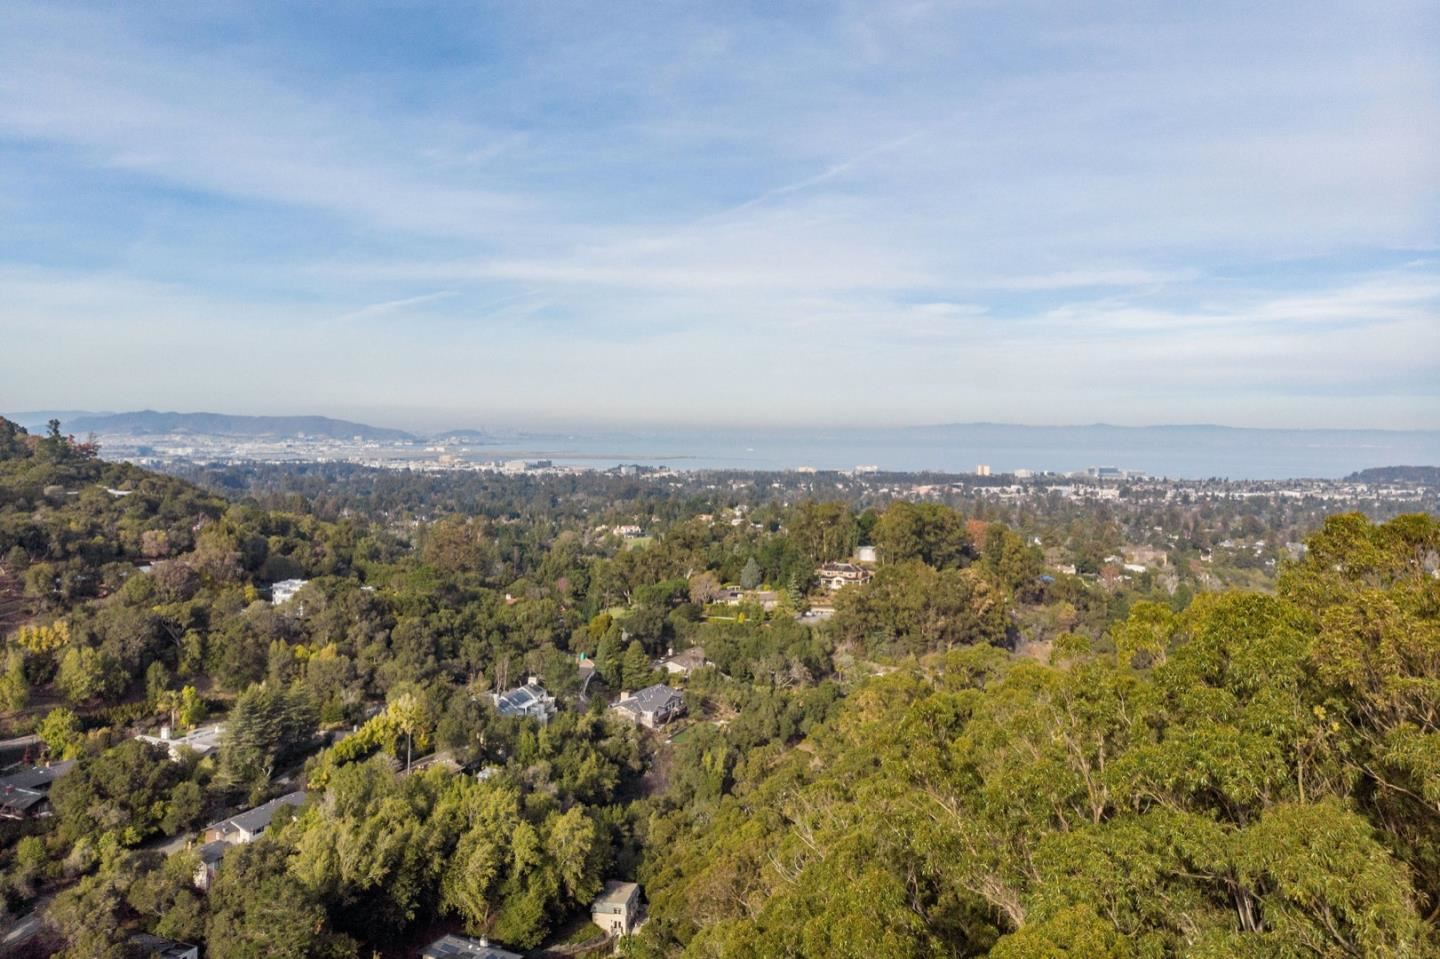 Photo for 35 Knollcrest RD, HILLSBOROUGH, CA 94010 (MLS # ML81825378)